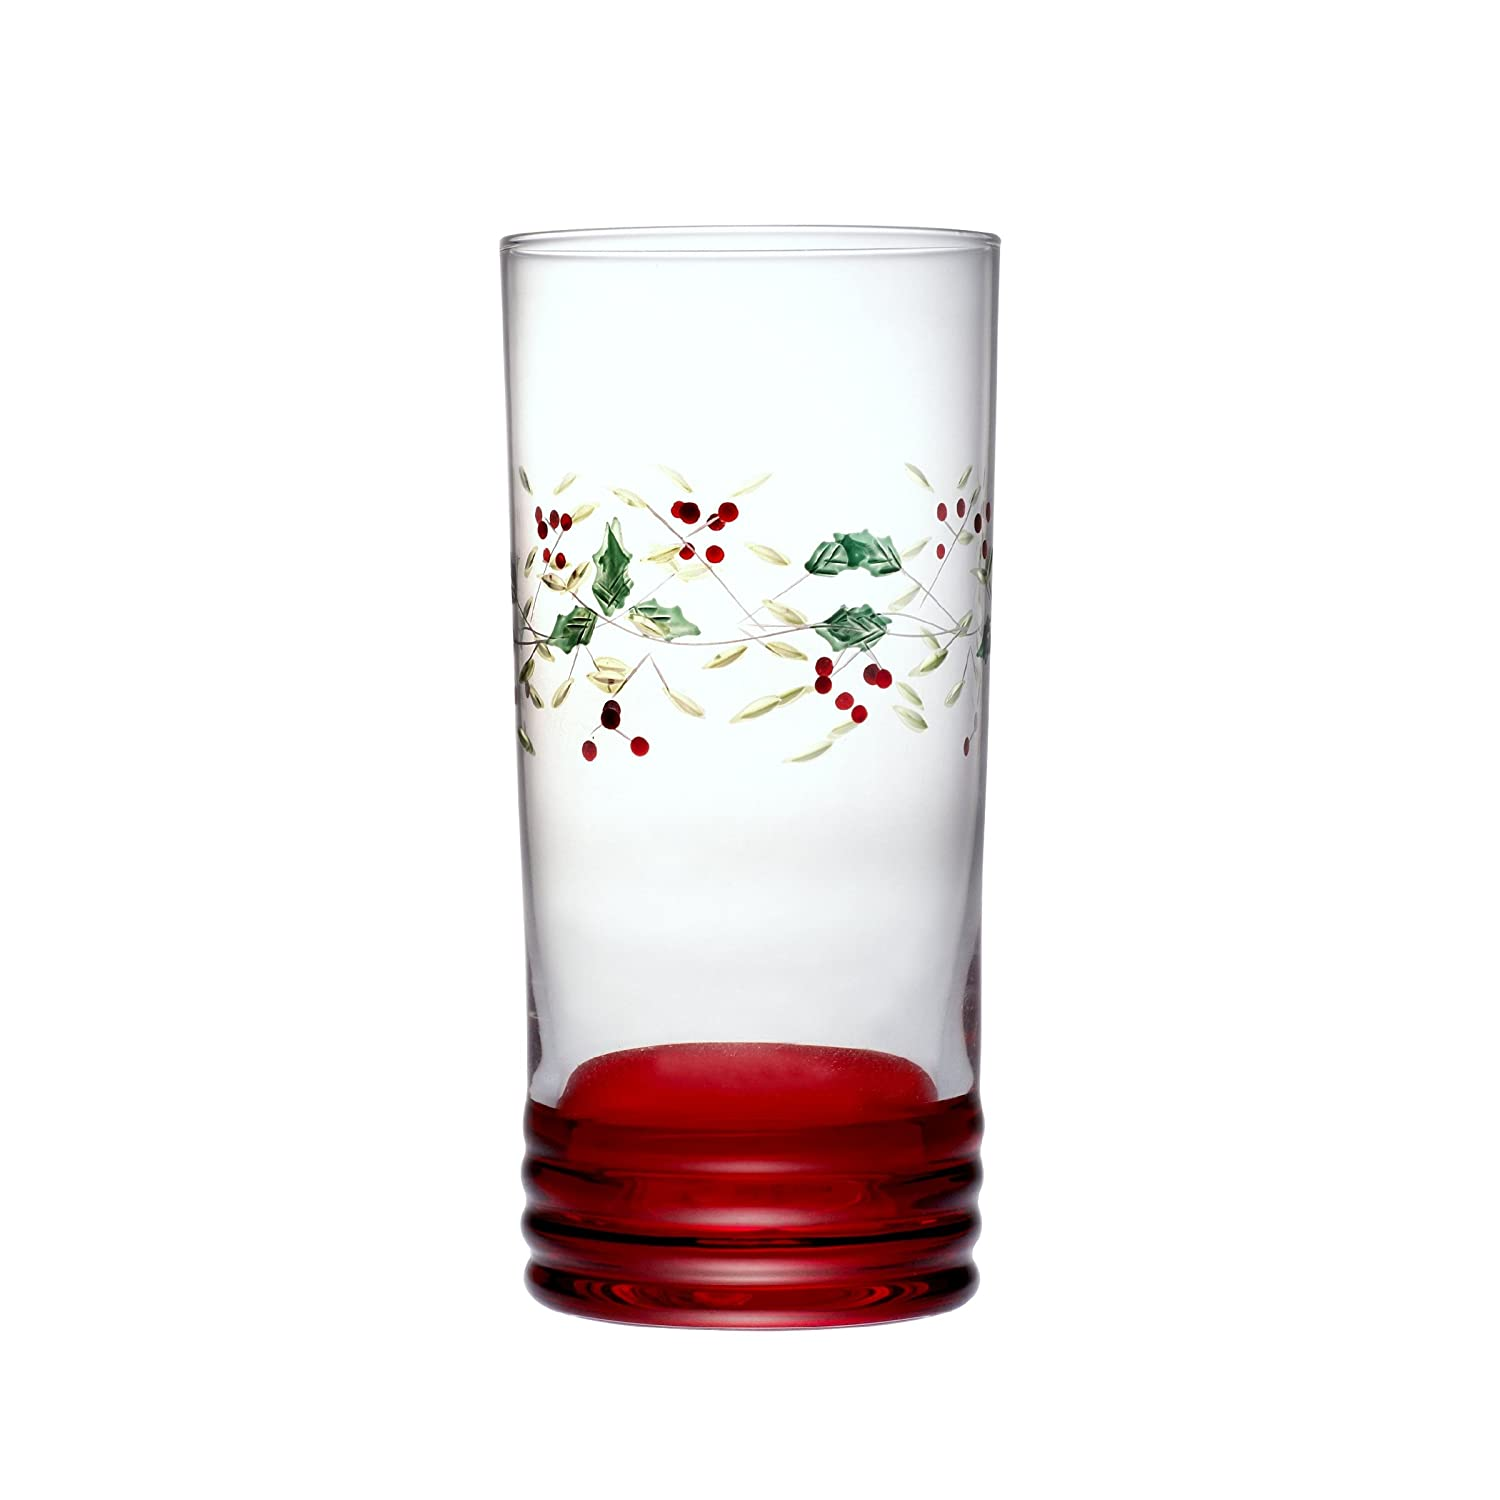 Pfaltzgraff Winterberry Cooler Glasses 20Ounce Set of 4